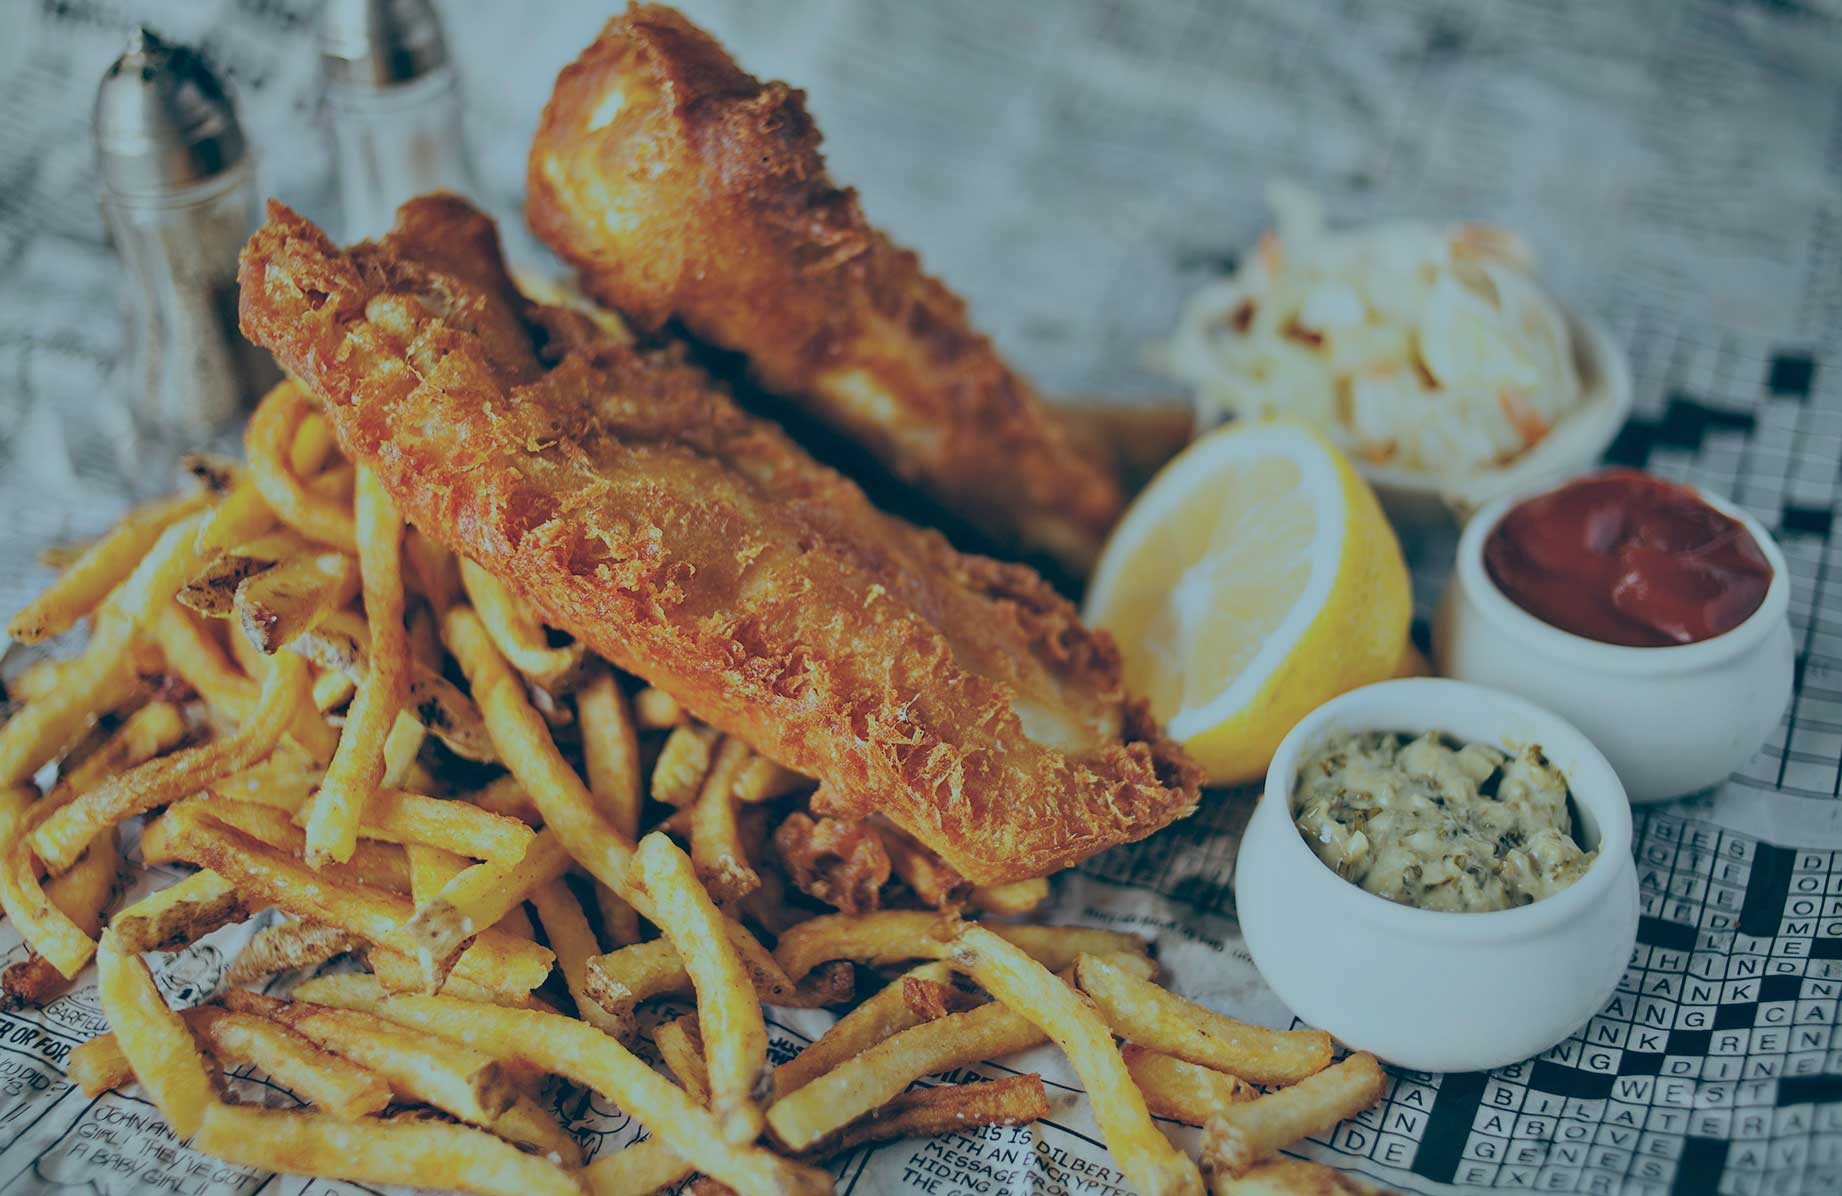 Mariblu Fish & Chips Takeaway 005